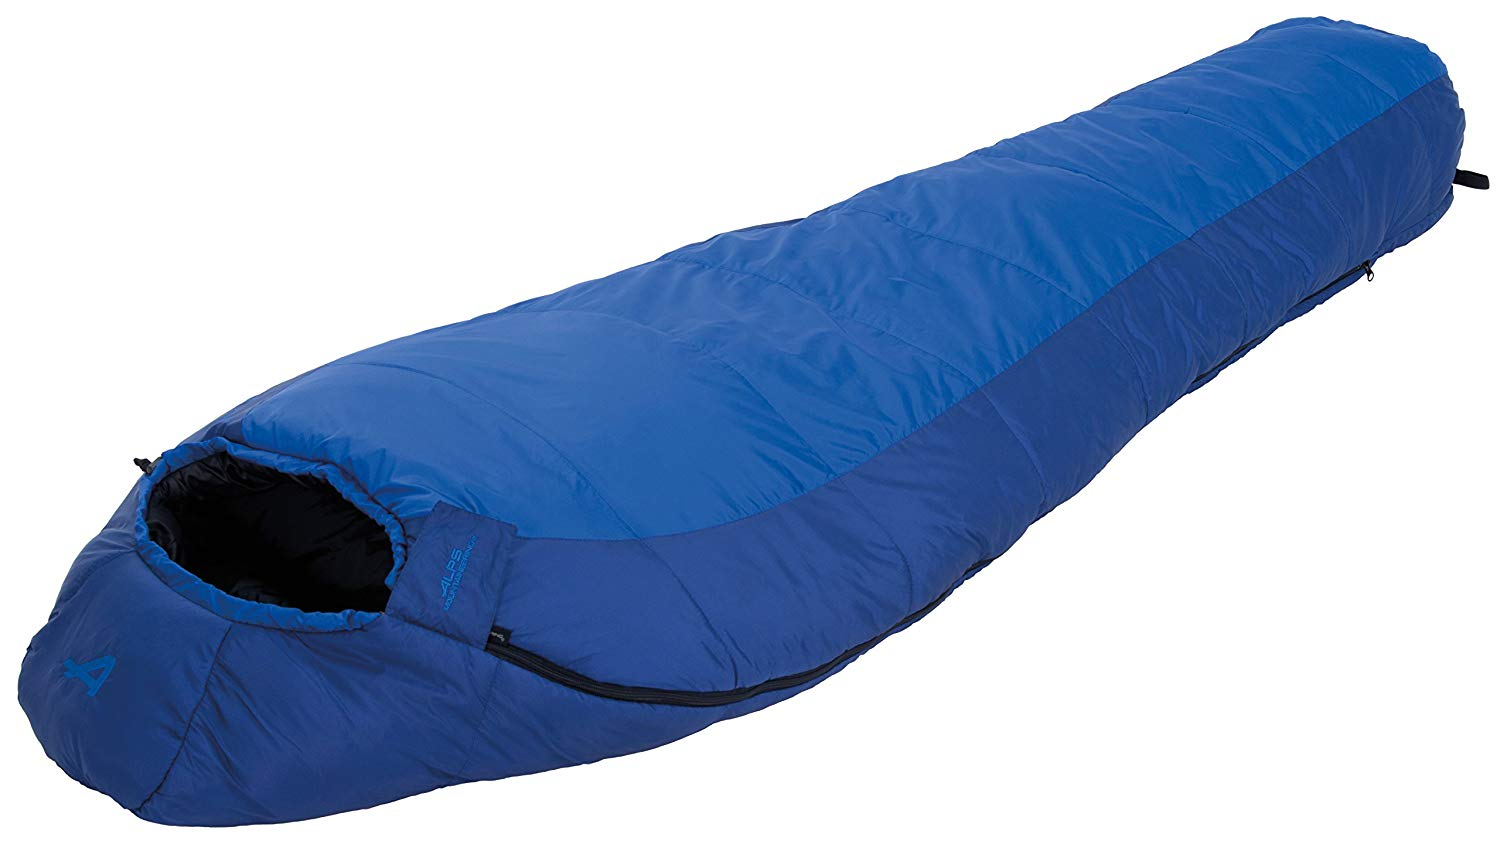 An image of Alps Mountaineering 4703732 30 Degree Sleeping Bag